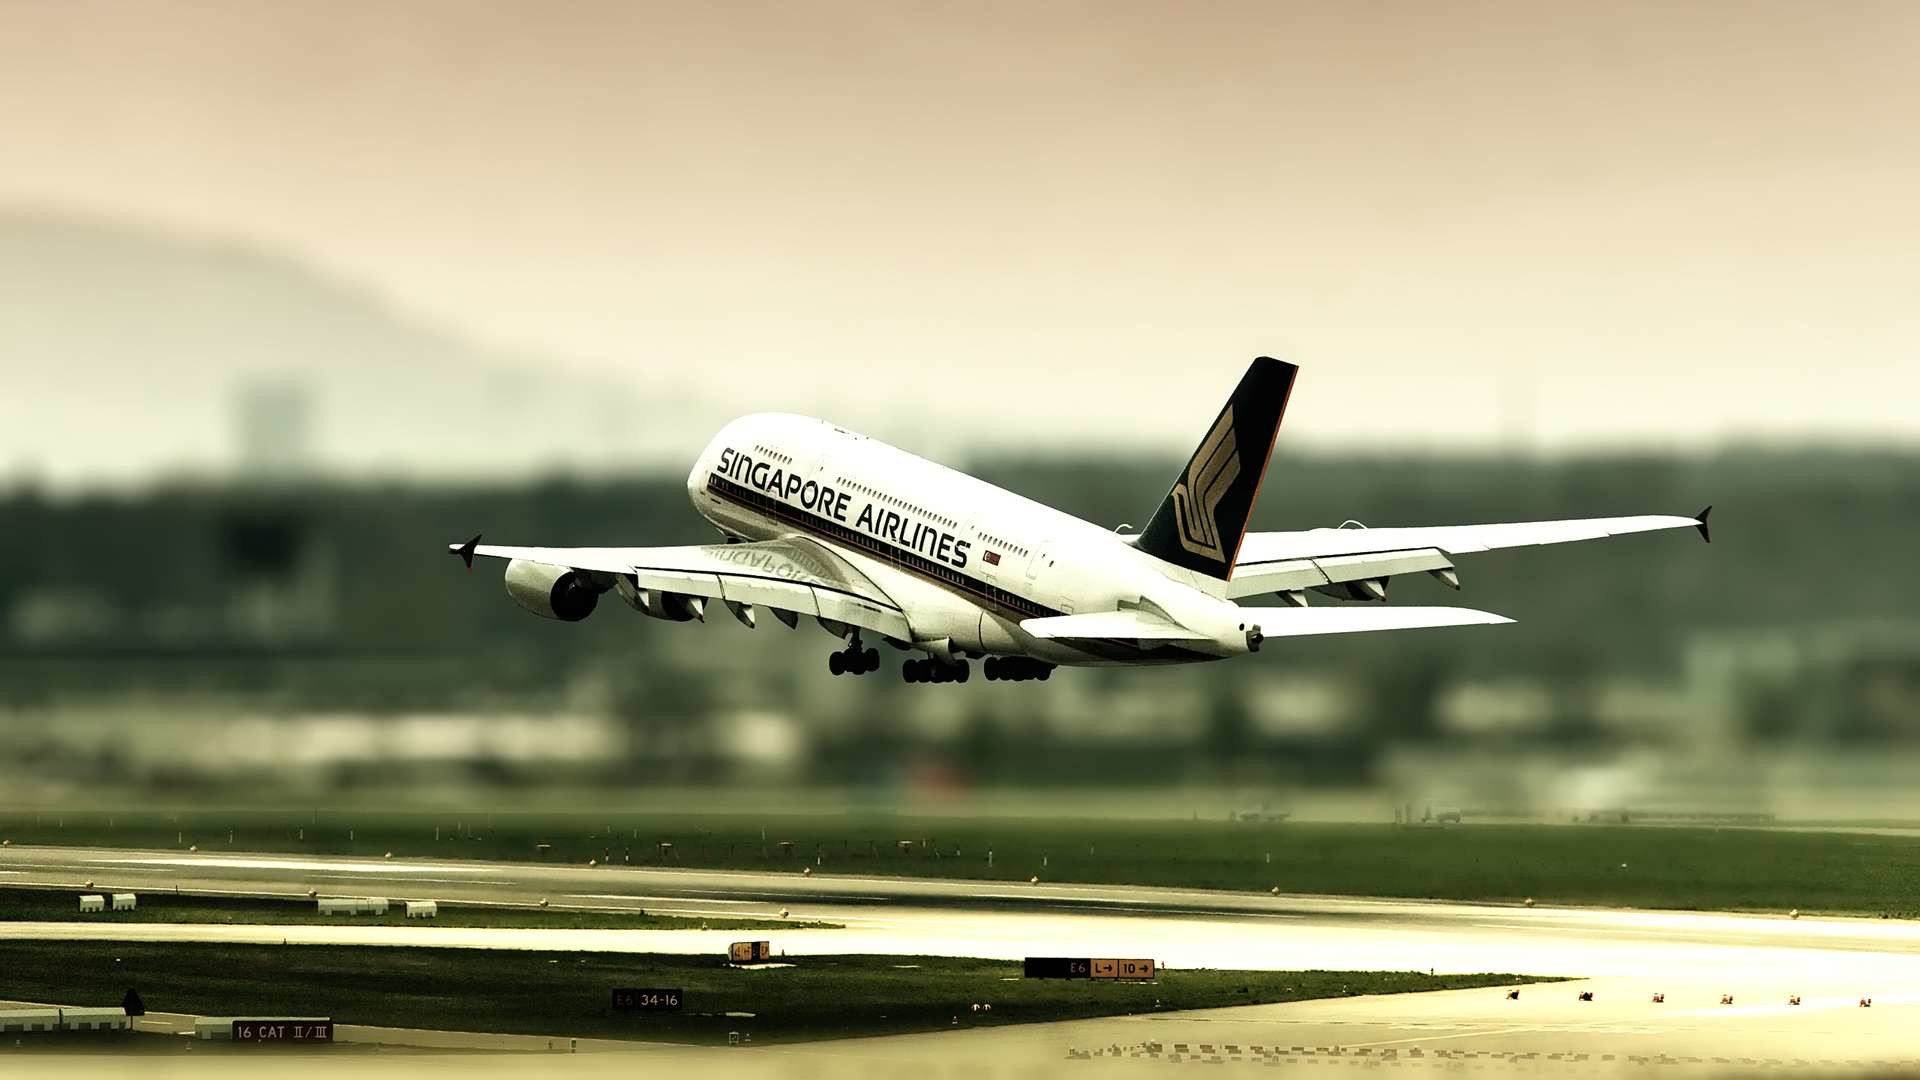 1920x1080 Airbus A380 Singapore Airlines Landing HD Wallpaper. « »